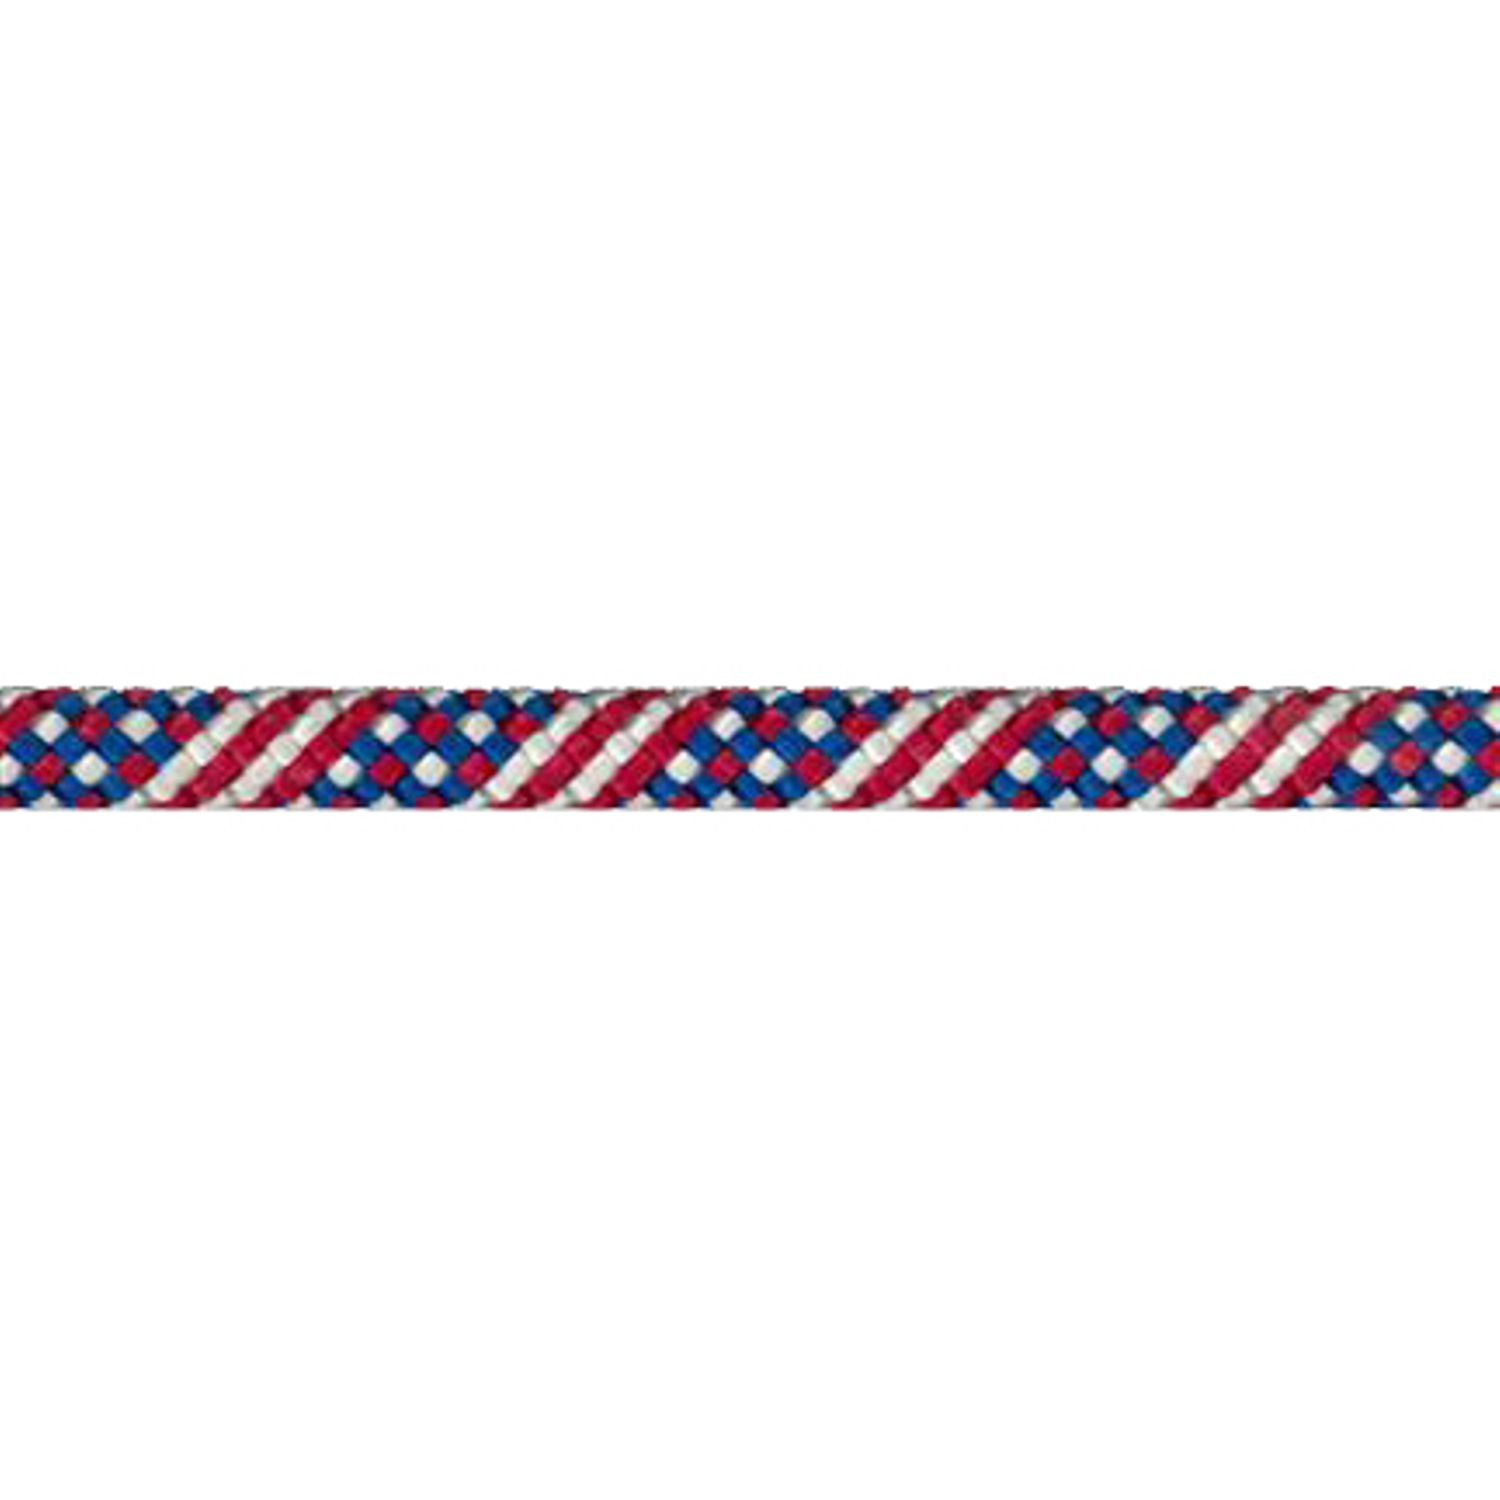 12.5 MM OLD GLORY STATIC KERNMANTLE ROPE, 600 FT.